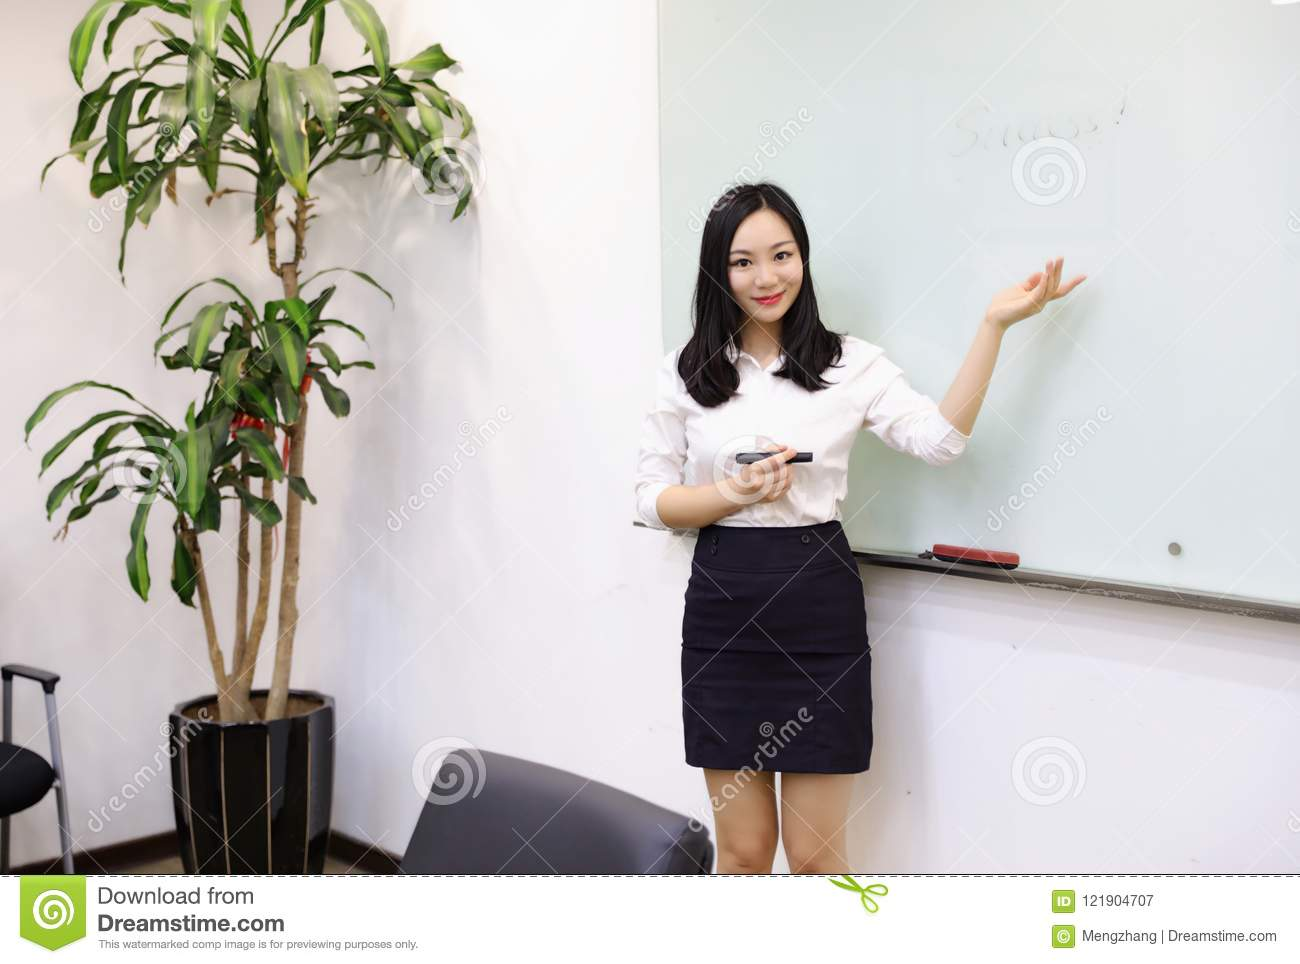 asia chinese office lady woman girl hand write success at whiteboard